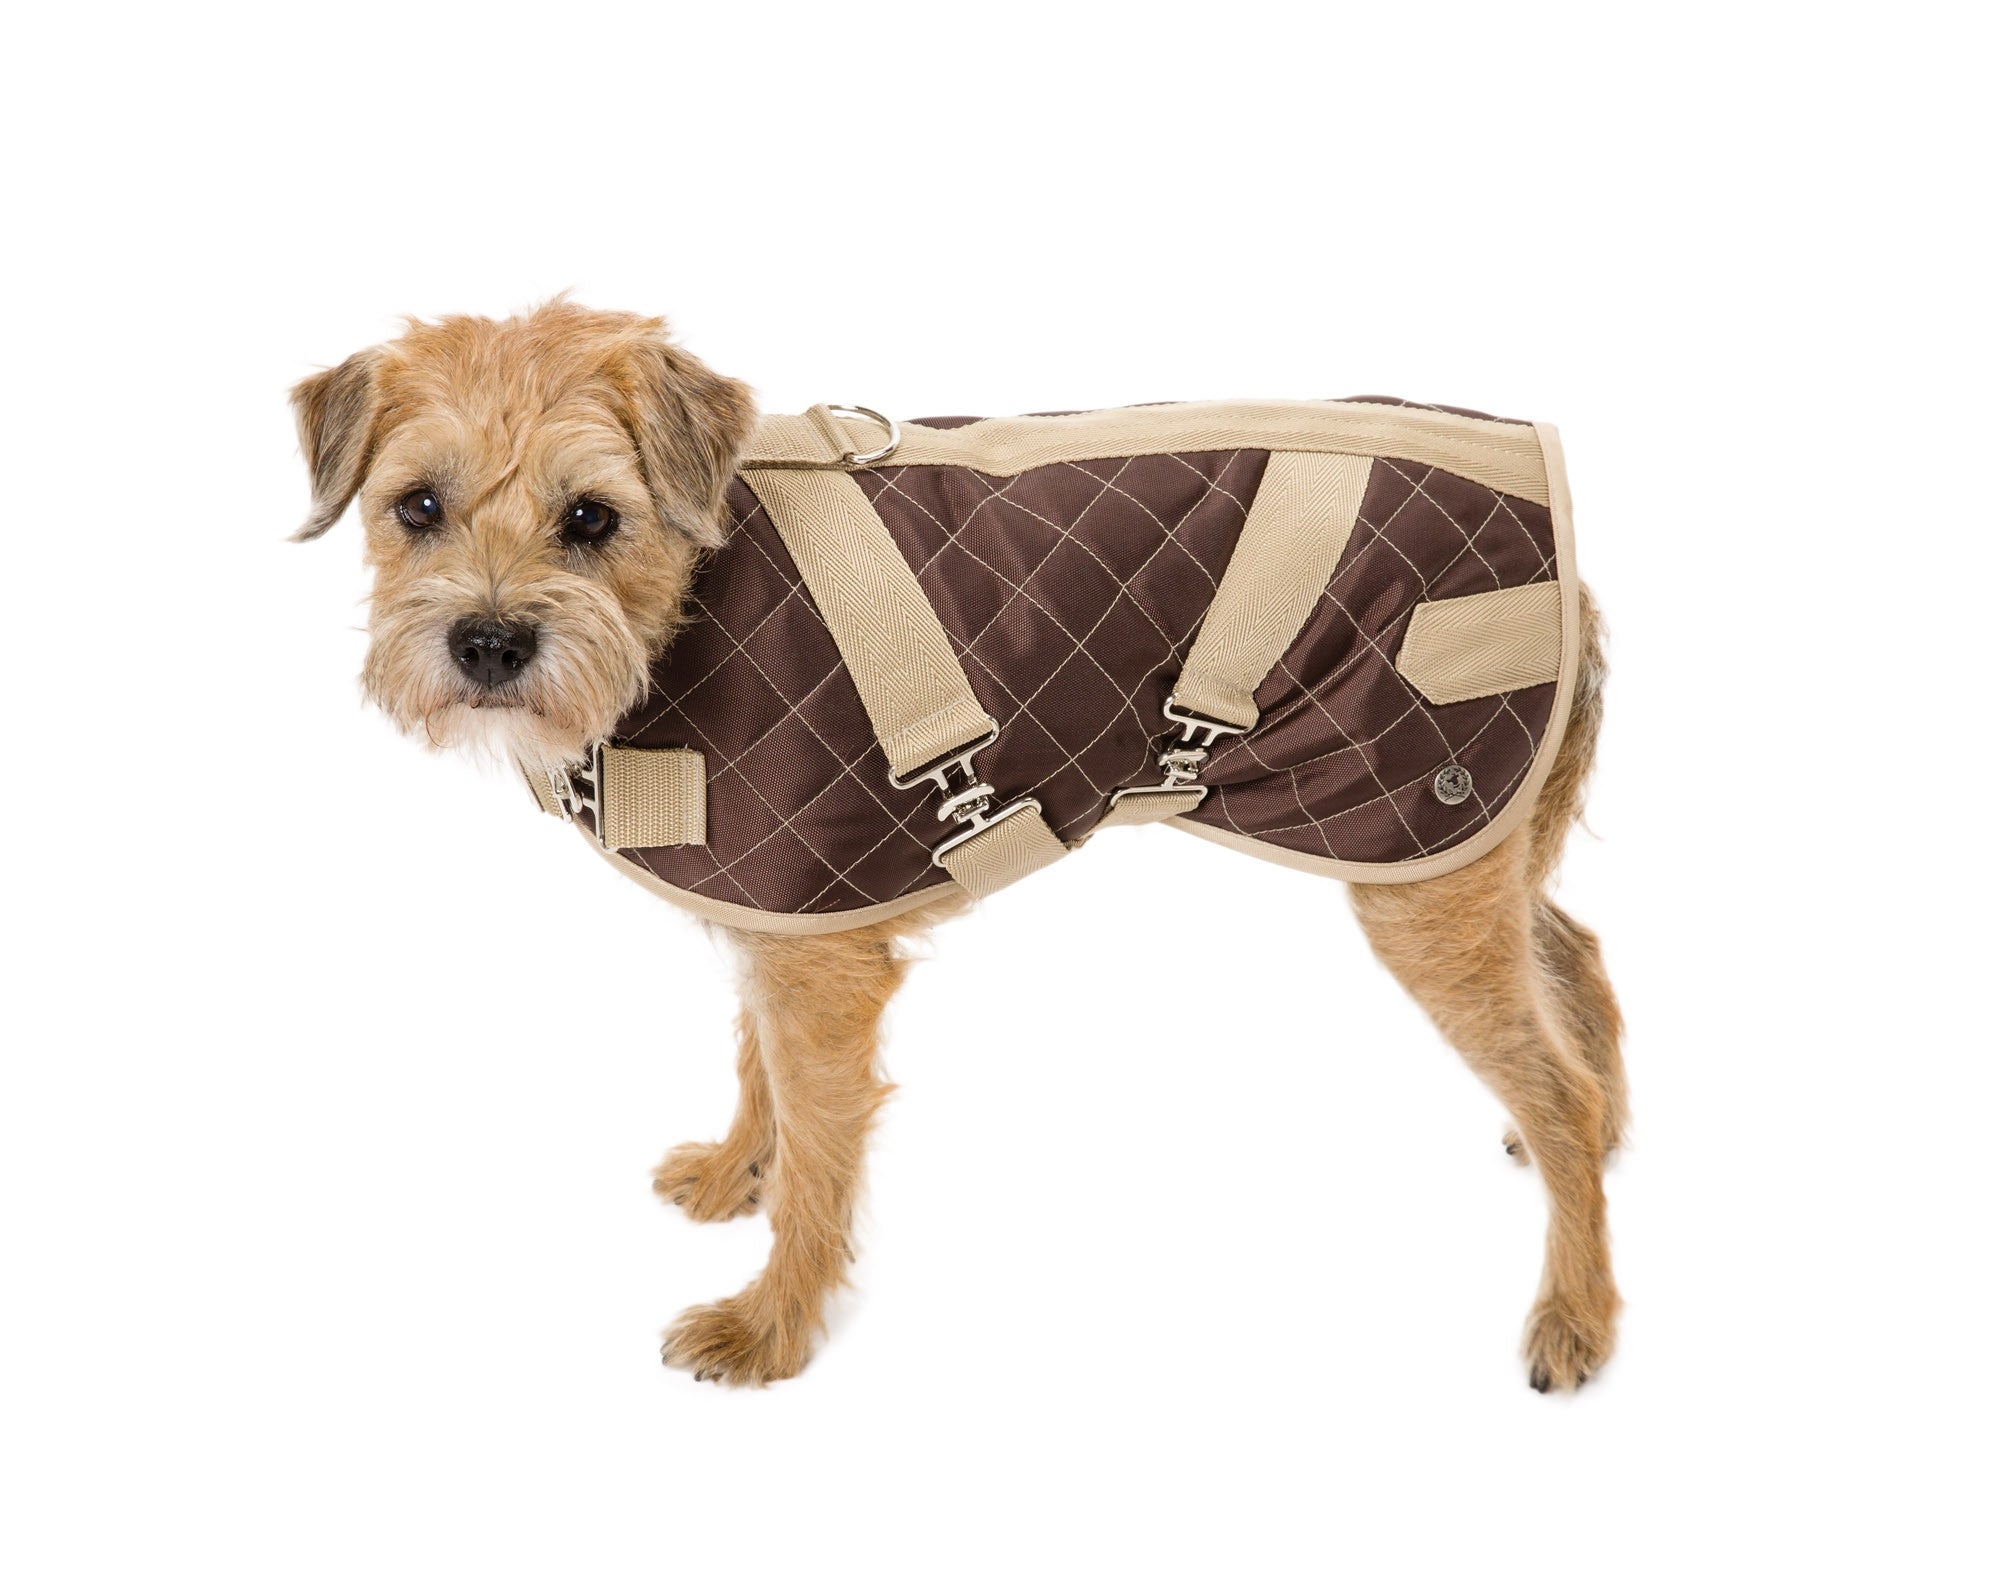 Dog Coat - Navy or Brown Quilted Horse Blanket